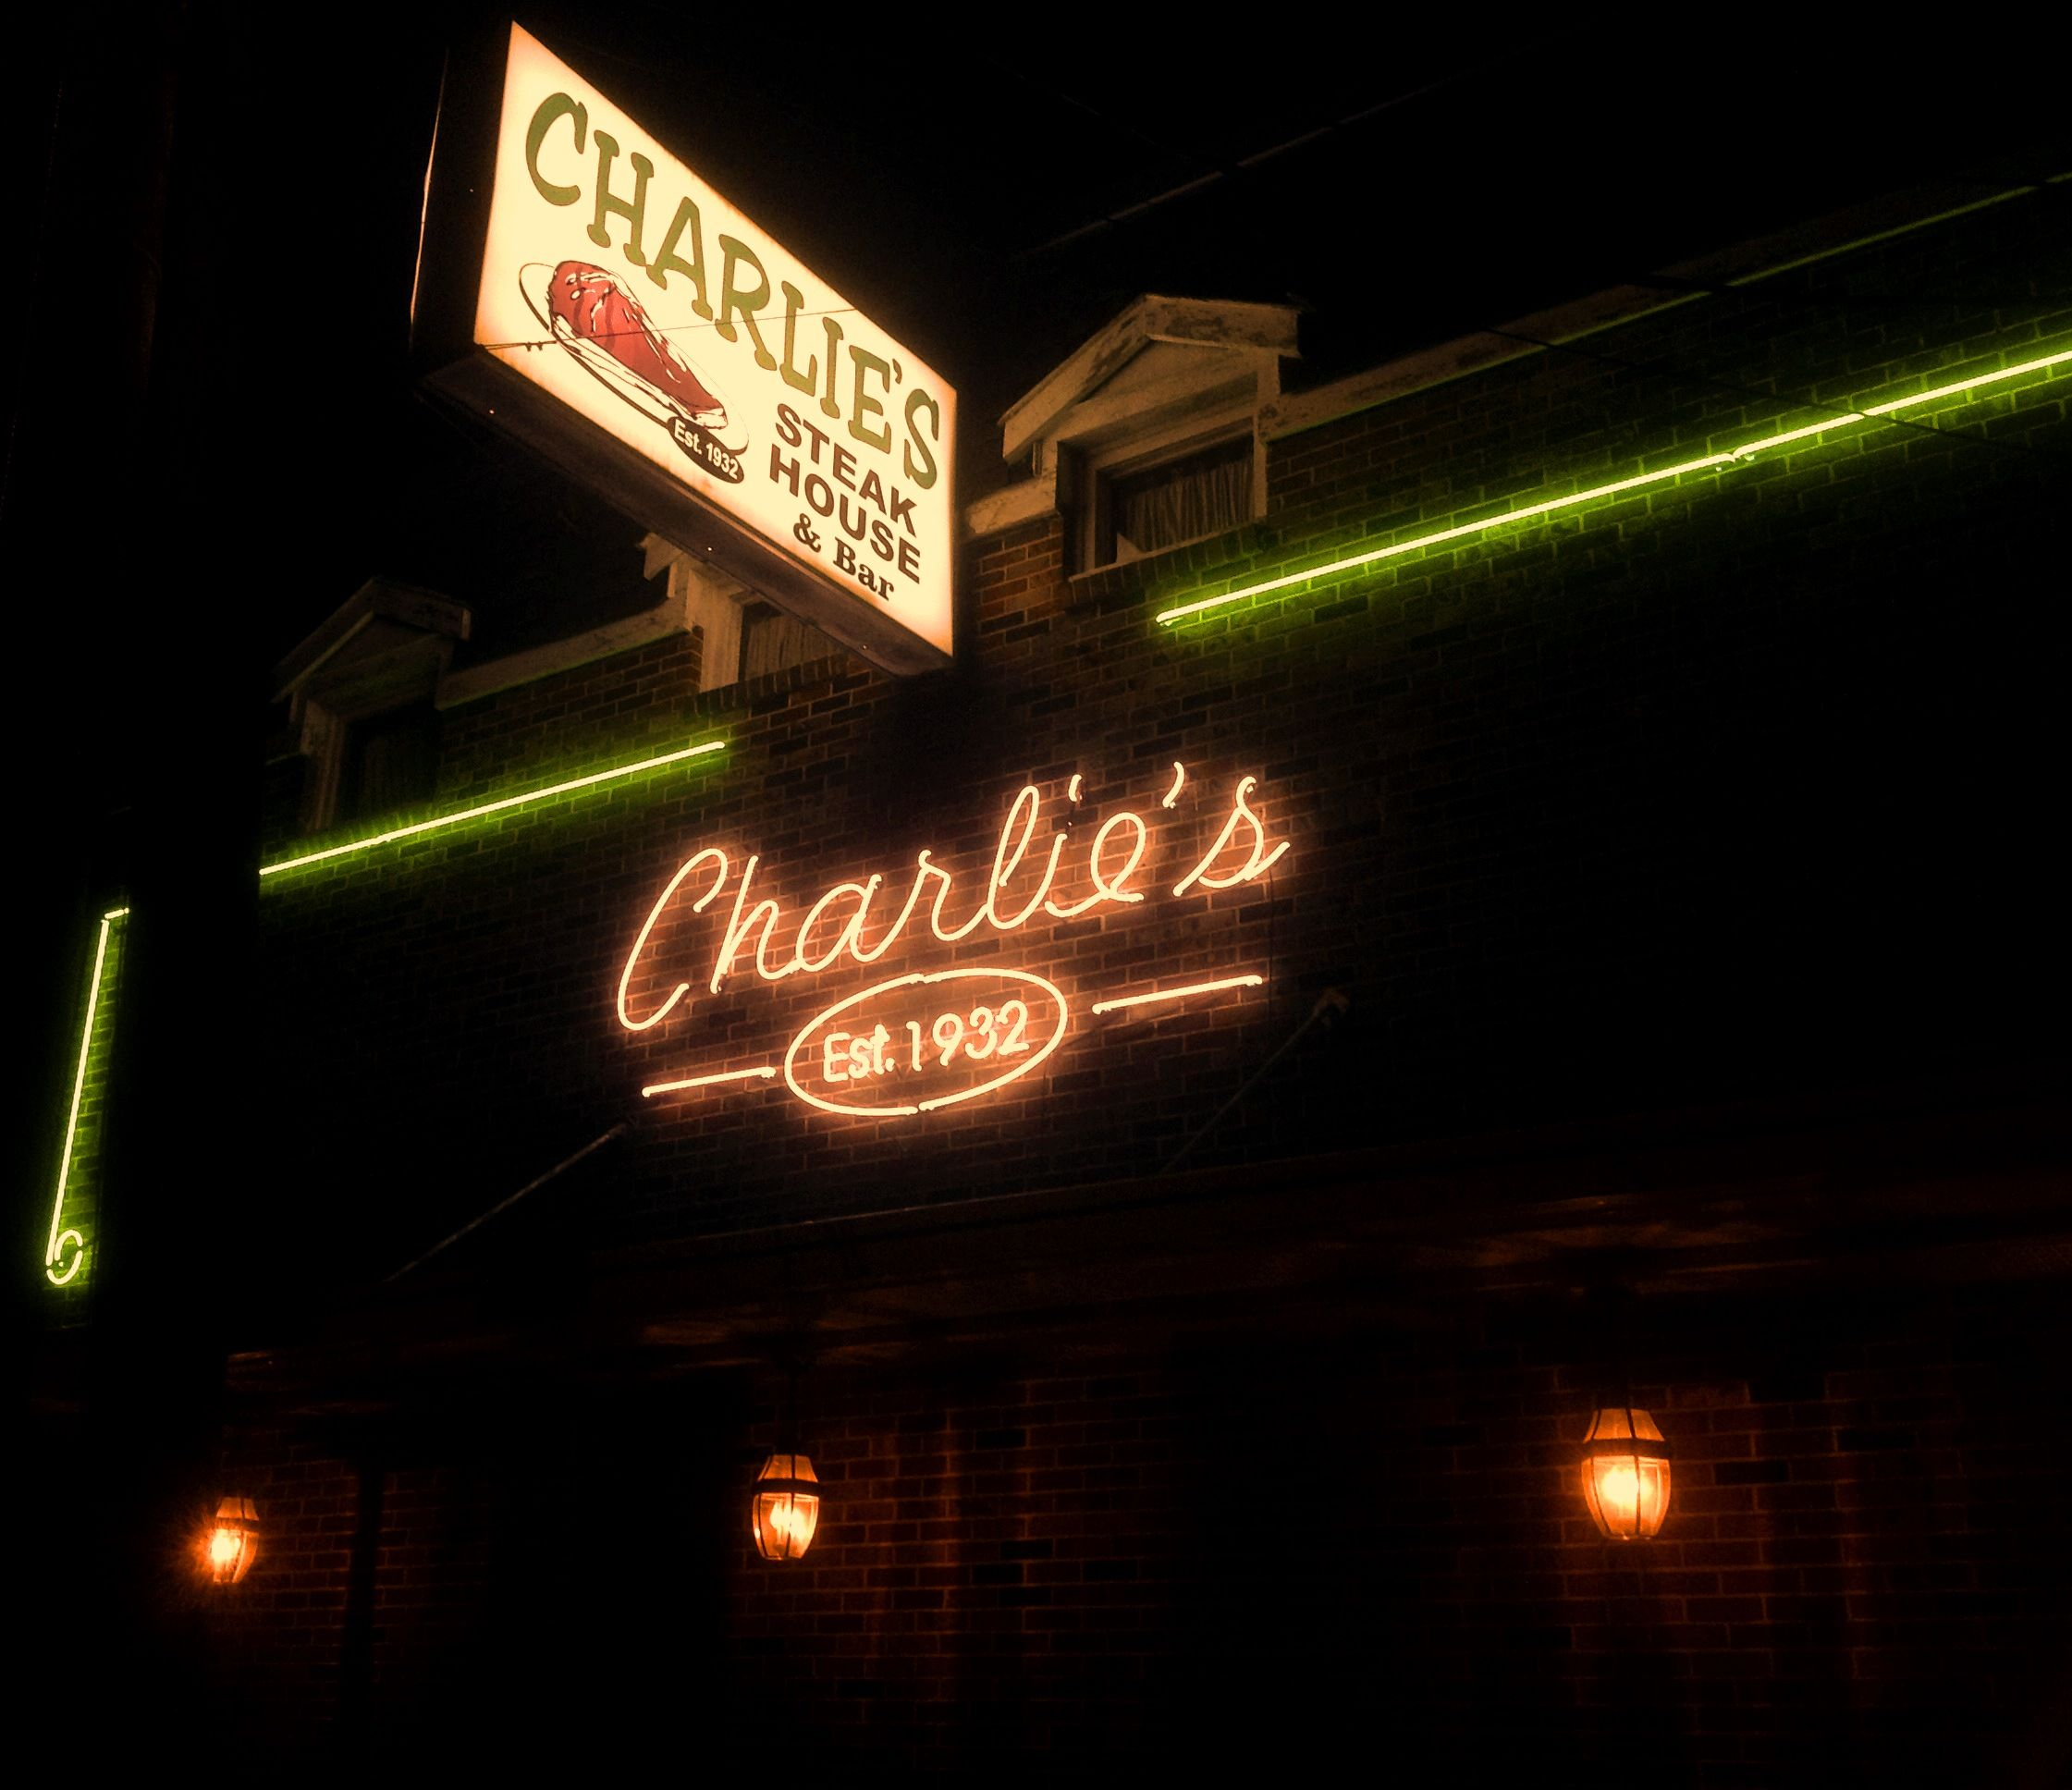 Charlie S Steakhouse New Orleans La Opened In 1932 Keeps It Classic And Simple The Restaurant Doesn T Have A Menu New Orleans Southern Region Louisiana